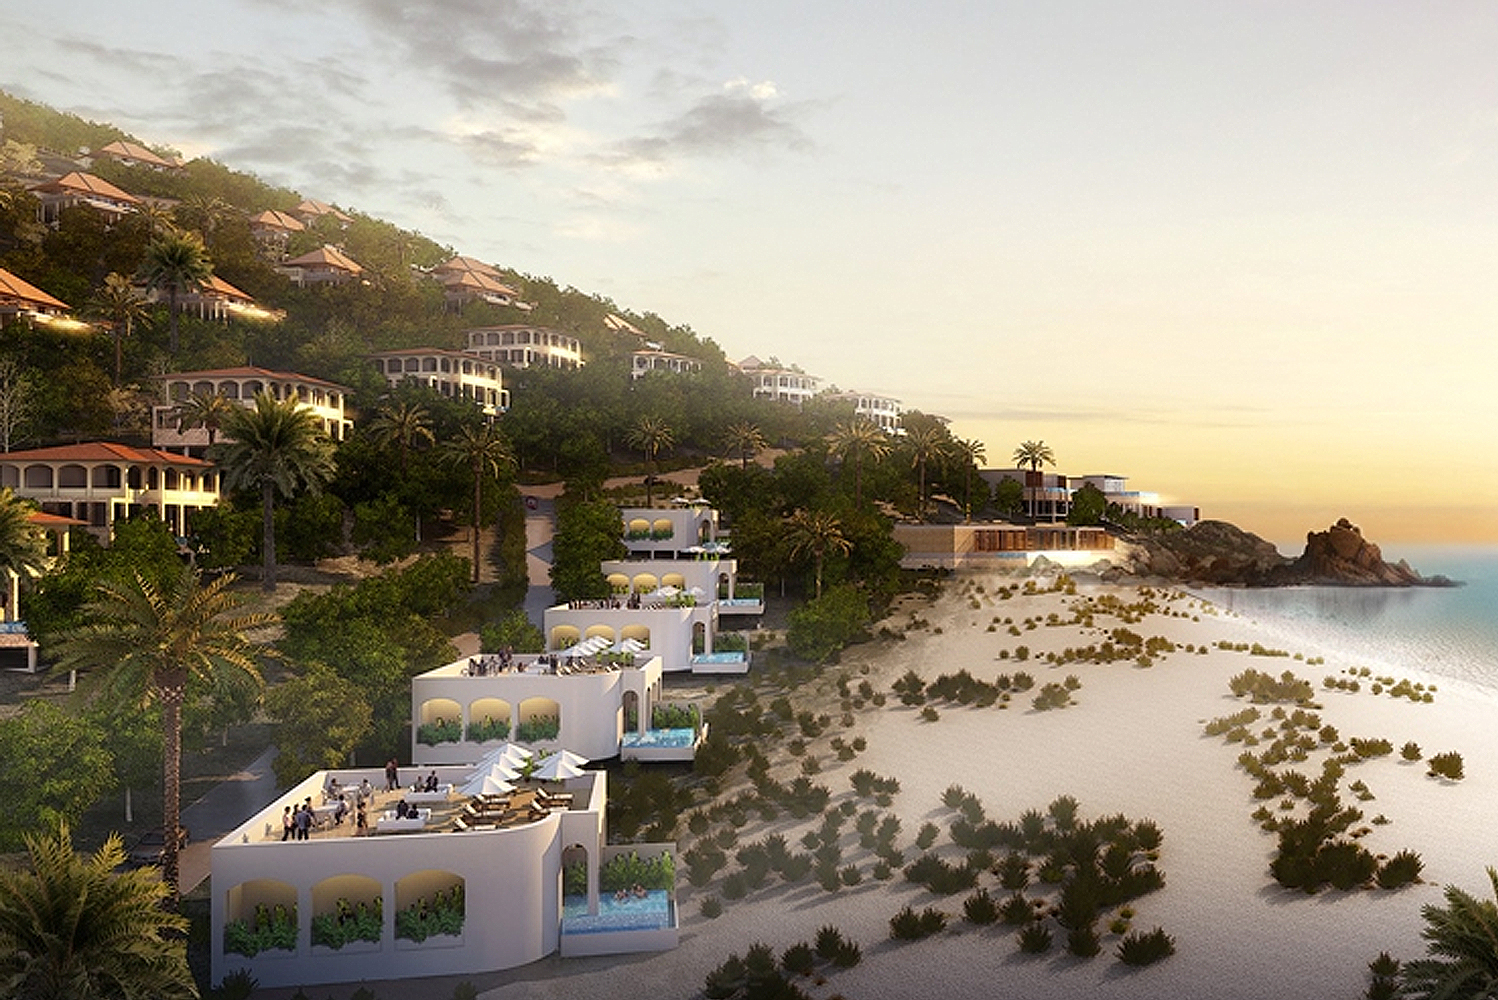 The Mui Dinh eco-resort in Vietnam will have six resort hotels and a boutique hotel that will have a total of 7,000 rooms.